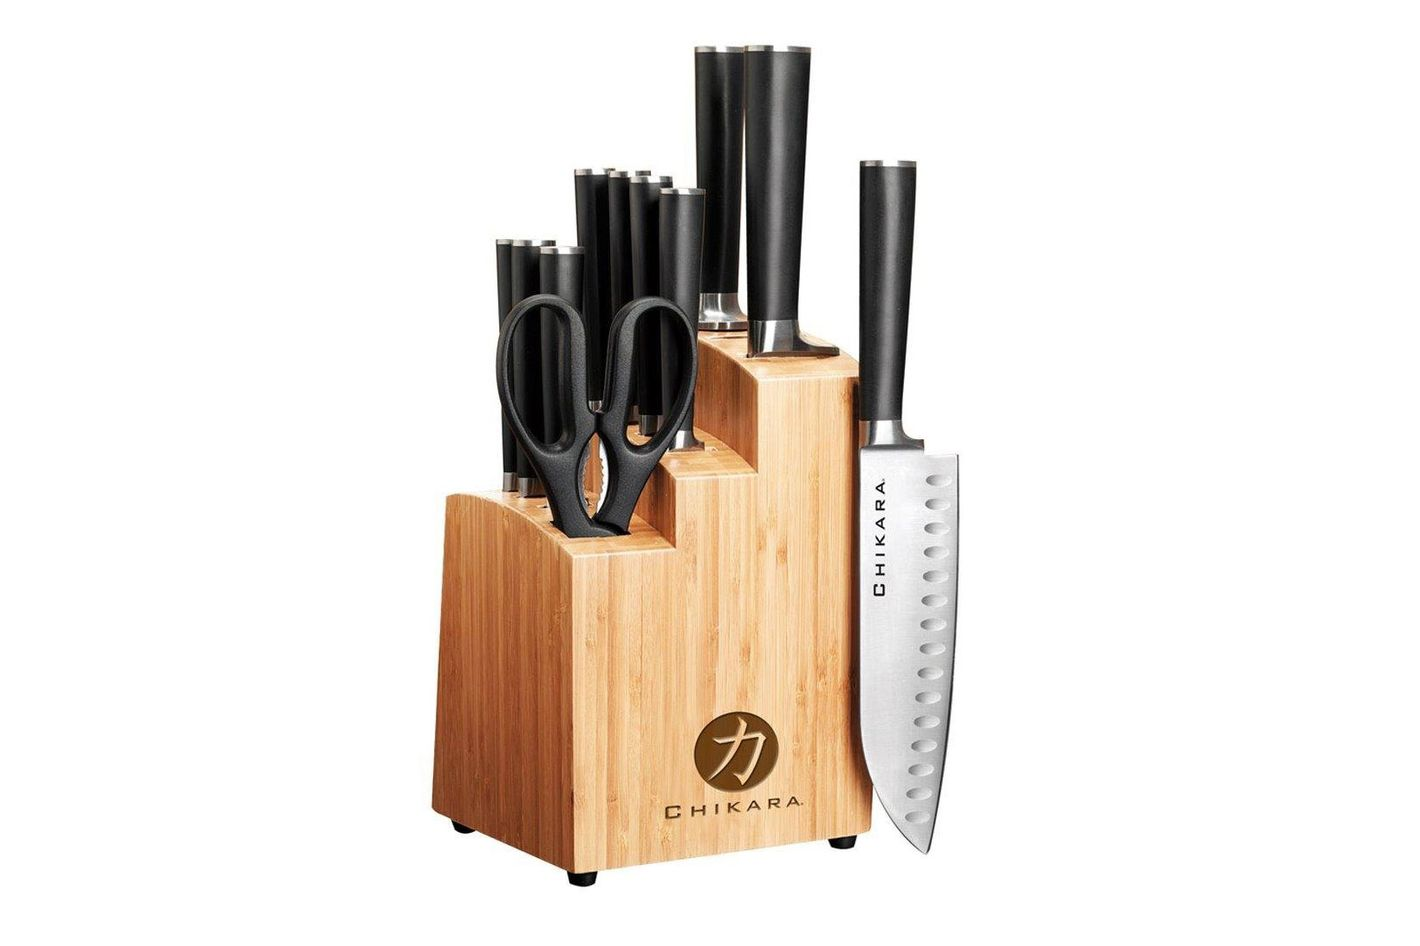 Ginsu Chikara Series Fully Forged 12-Piece Japanese Steel Knife Set